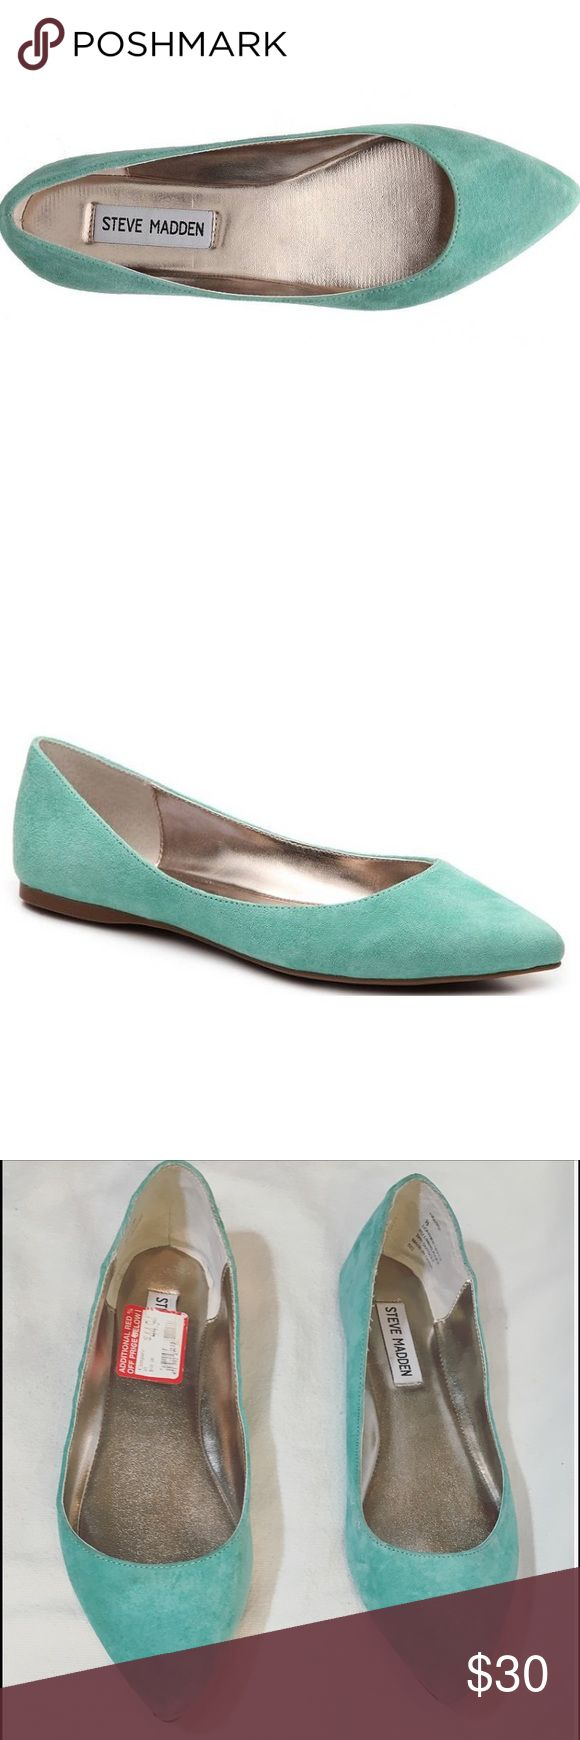 Steve Madden Haanna Suede Flat Turquoise Size 8 Slip into these vibrant pointed toe flats from Steve Madden. The suede Haanna ballet is a stylish way to add more pep to your step every day. Suede upper Pointed toe Synthetic sole Steve Madden Shoes Flats & Loafers